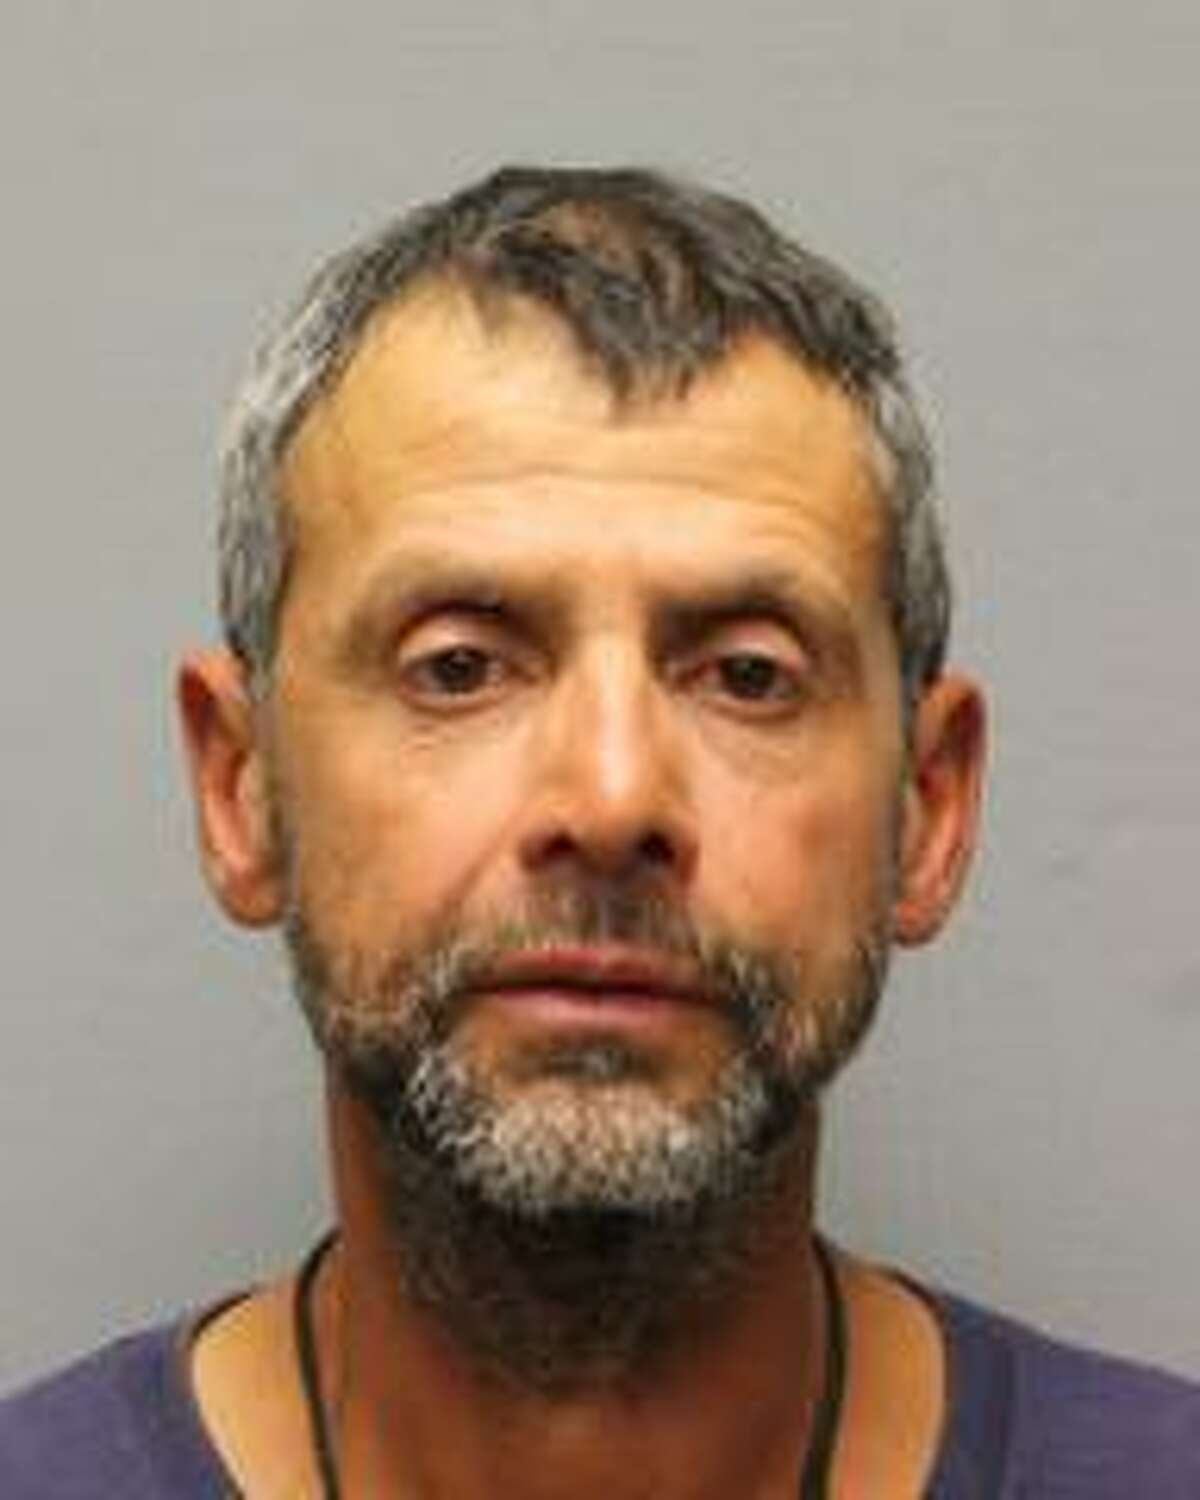 Luis Alaniz, 53, is accused of murdering a man in a fatal stabbing on Christmas Day. Anyone with information about the death of Edwin Roman-Lozada is encouraged to contact Crime Stoppers of Houston at 713-222-TIPS.